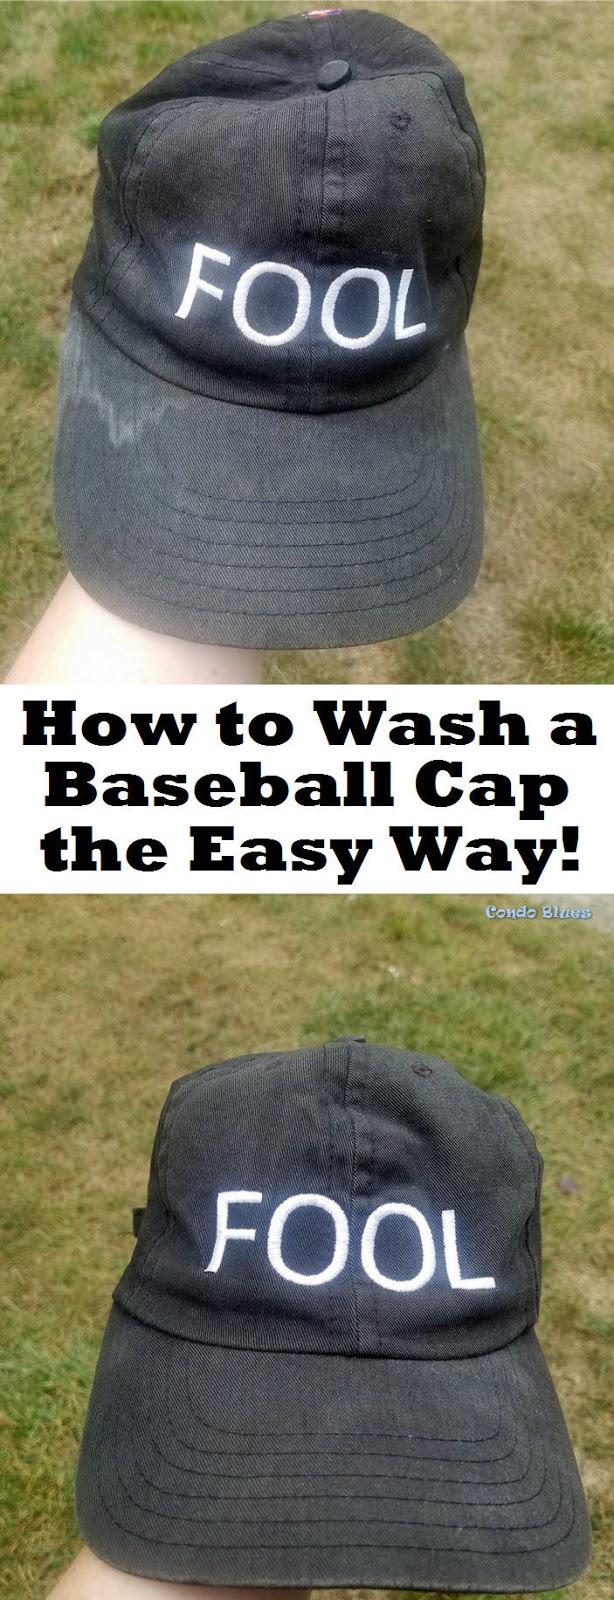 how do you wash a baseball cap